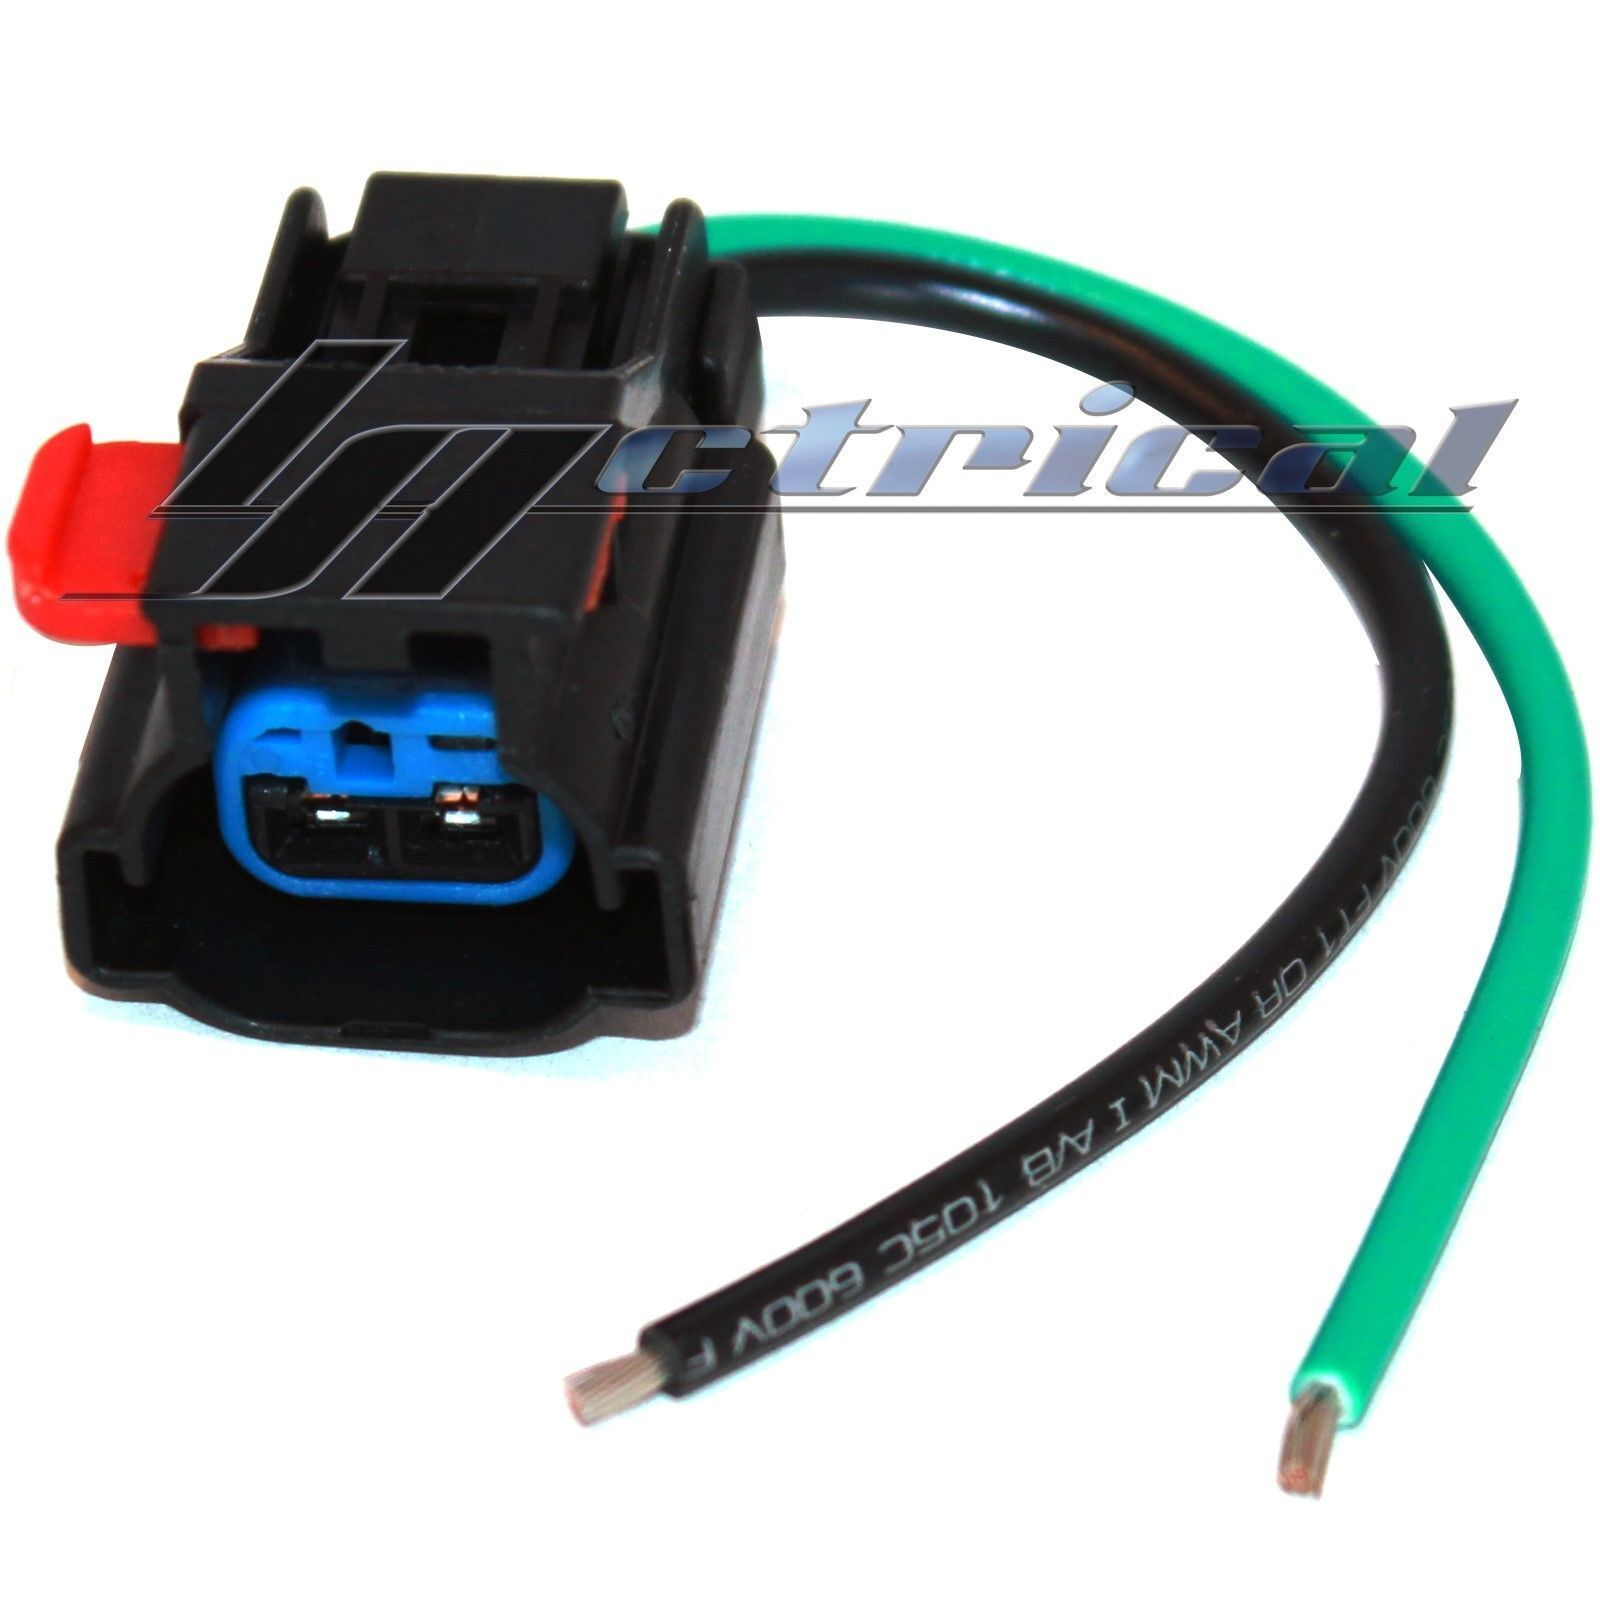 alternator repair plug harness pin wire pigtail for dodge neon you re almost done alternator repair plug harness 2 pin wire pigtail for dodge neon